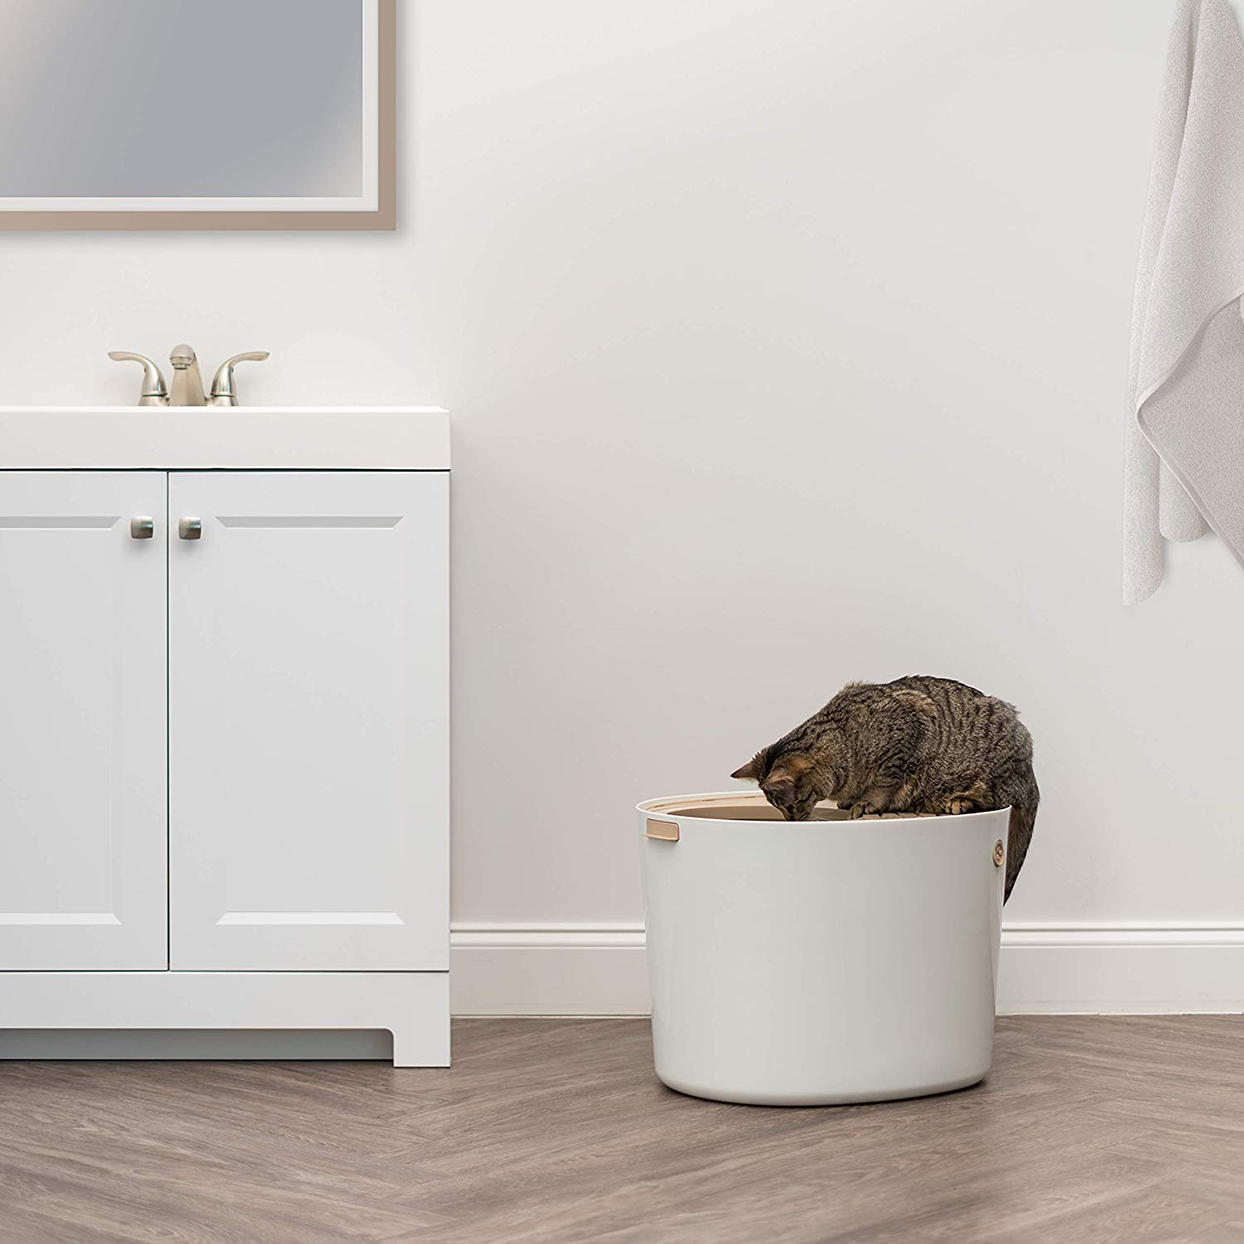 Look for a Litter Box with a Top Entrance